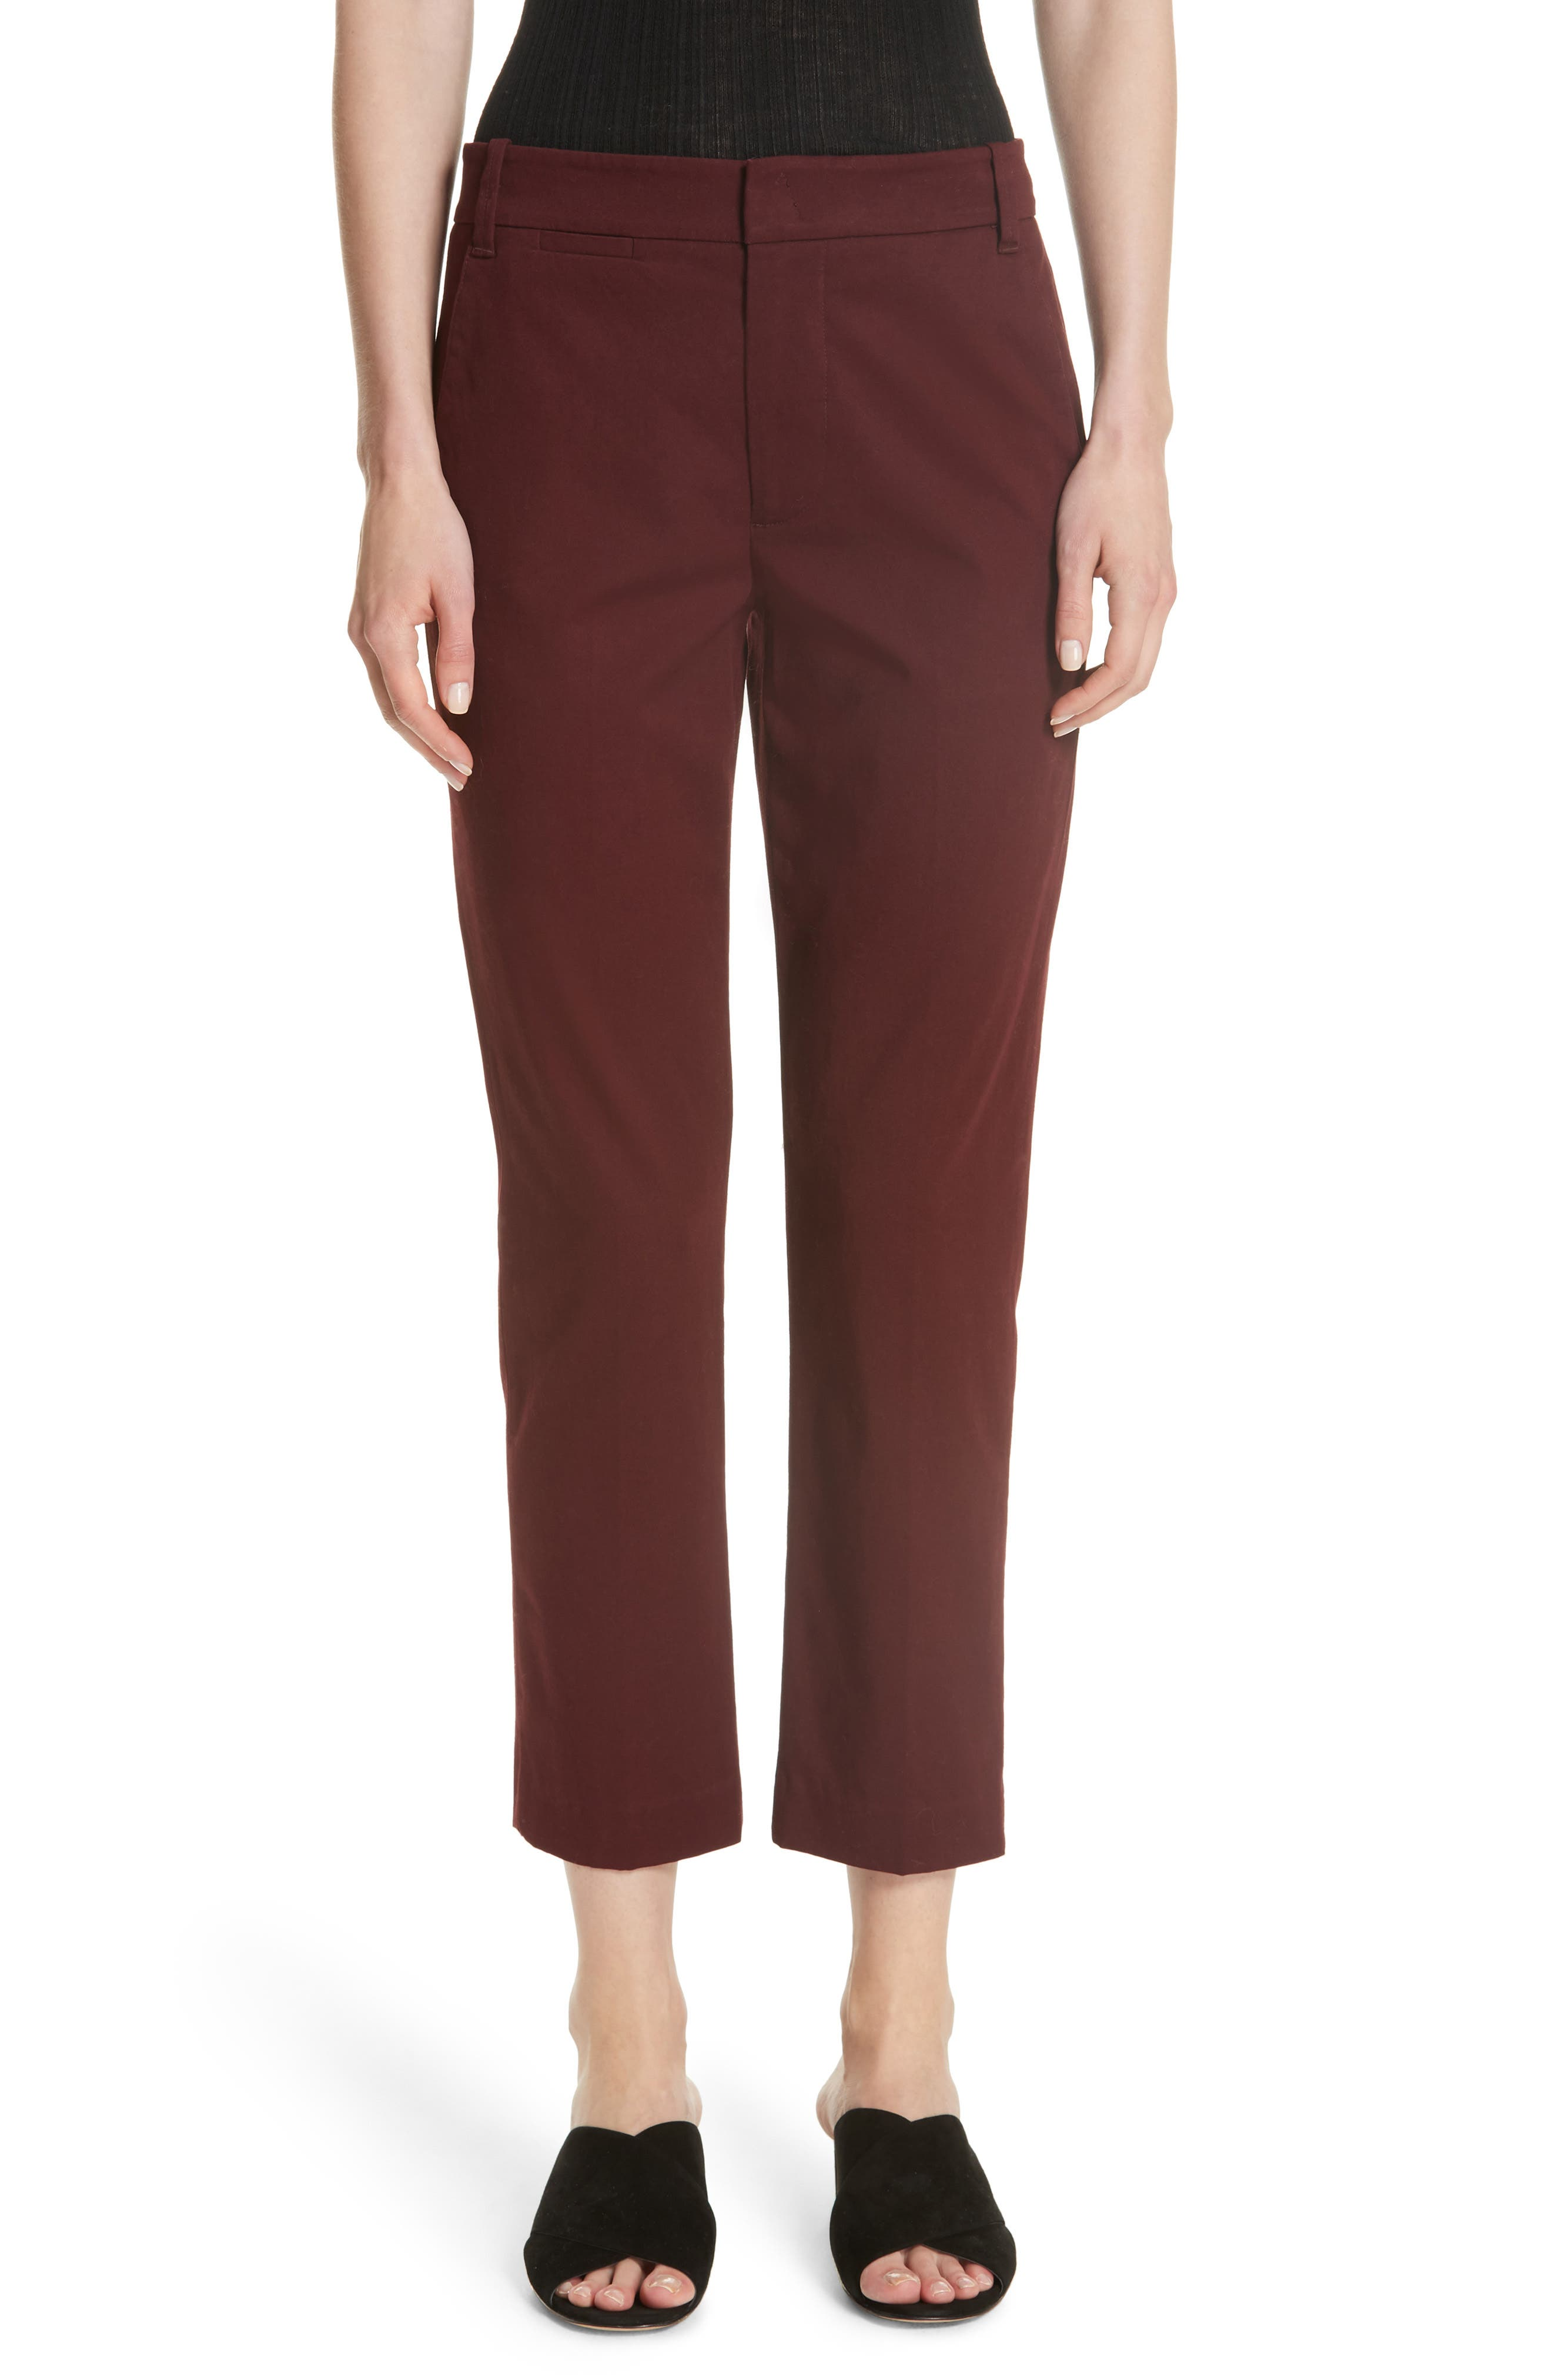 Coin Pocket Chino Pants,                             Main thumbnail 1, color,                             Black Cherry